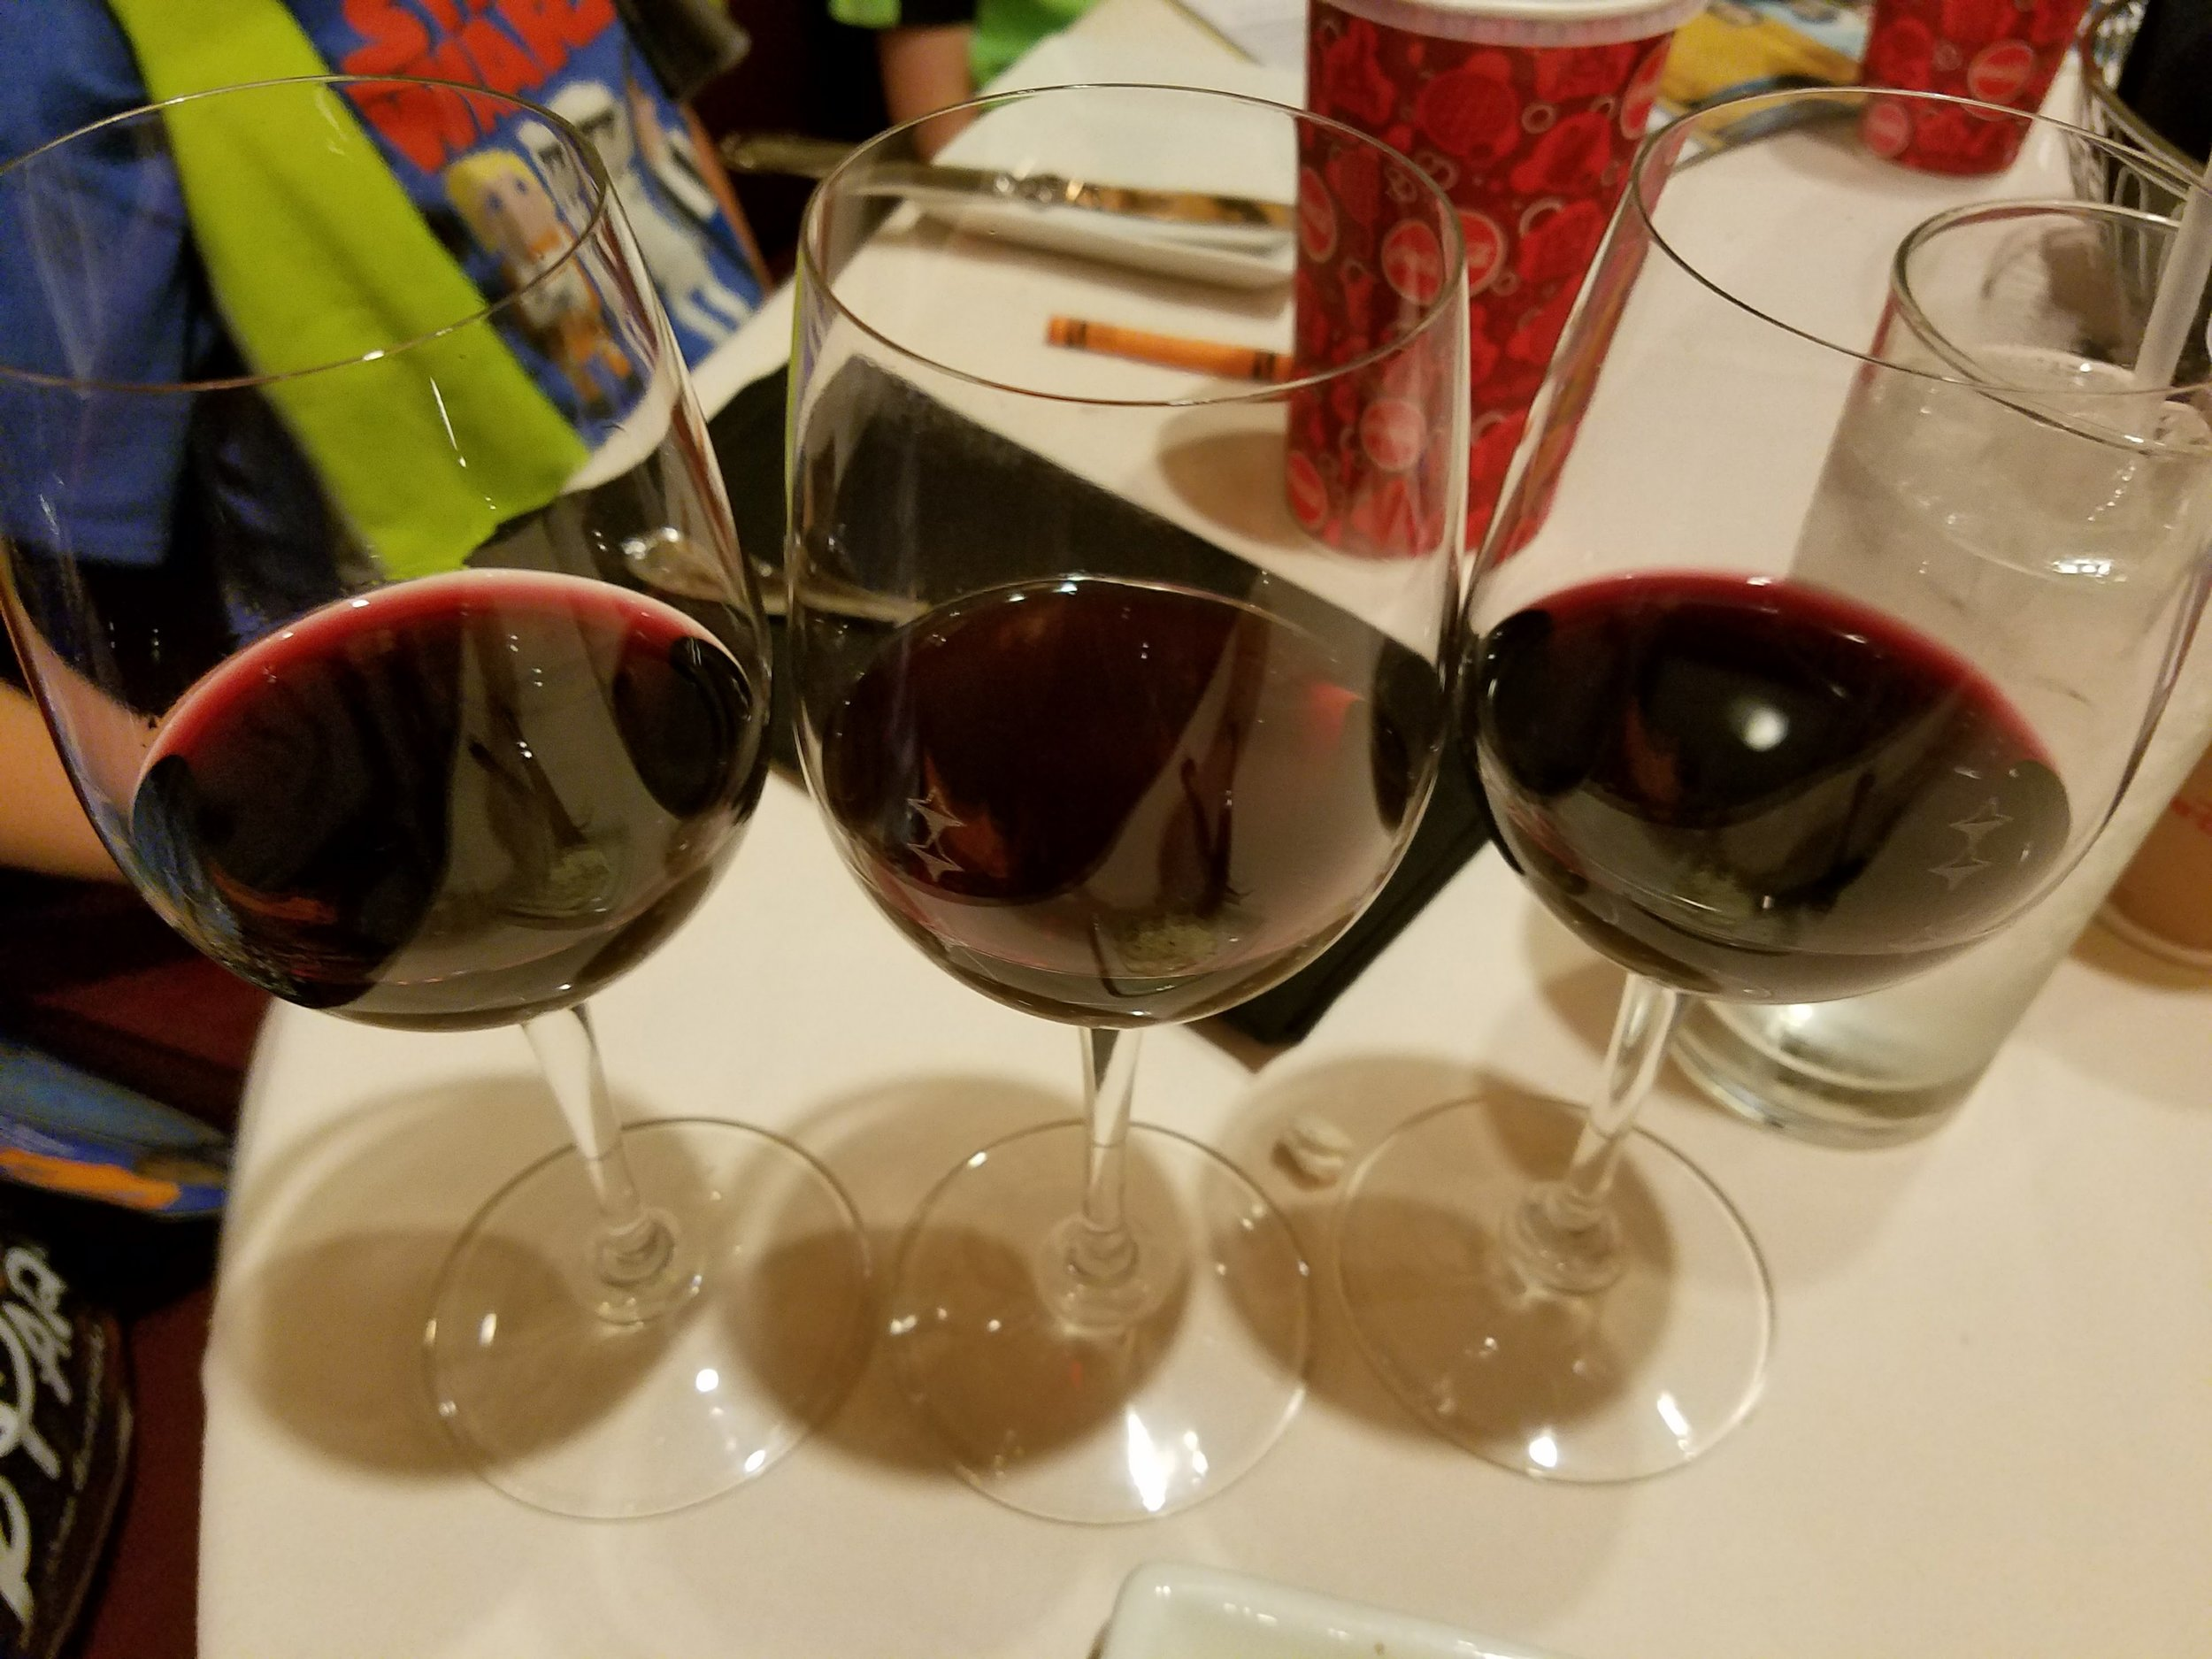 The Belle of Hollywood Pinot Noir flight. From left to right: Belle Glos Las Alturas Vineyard, Skywalker, and Belle Glos Dairyman Vineyard.